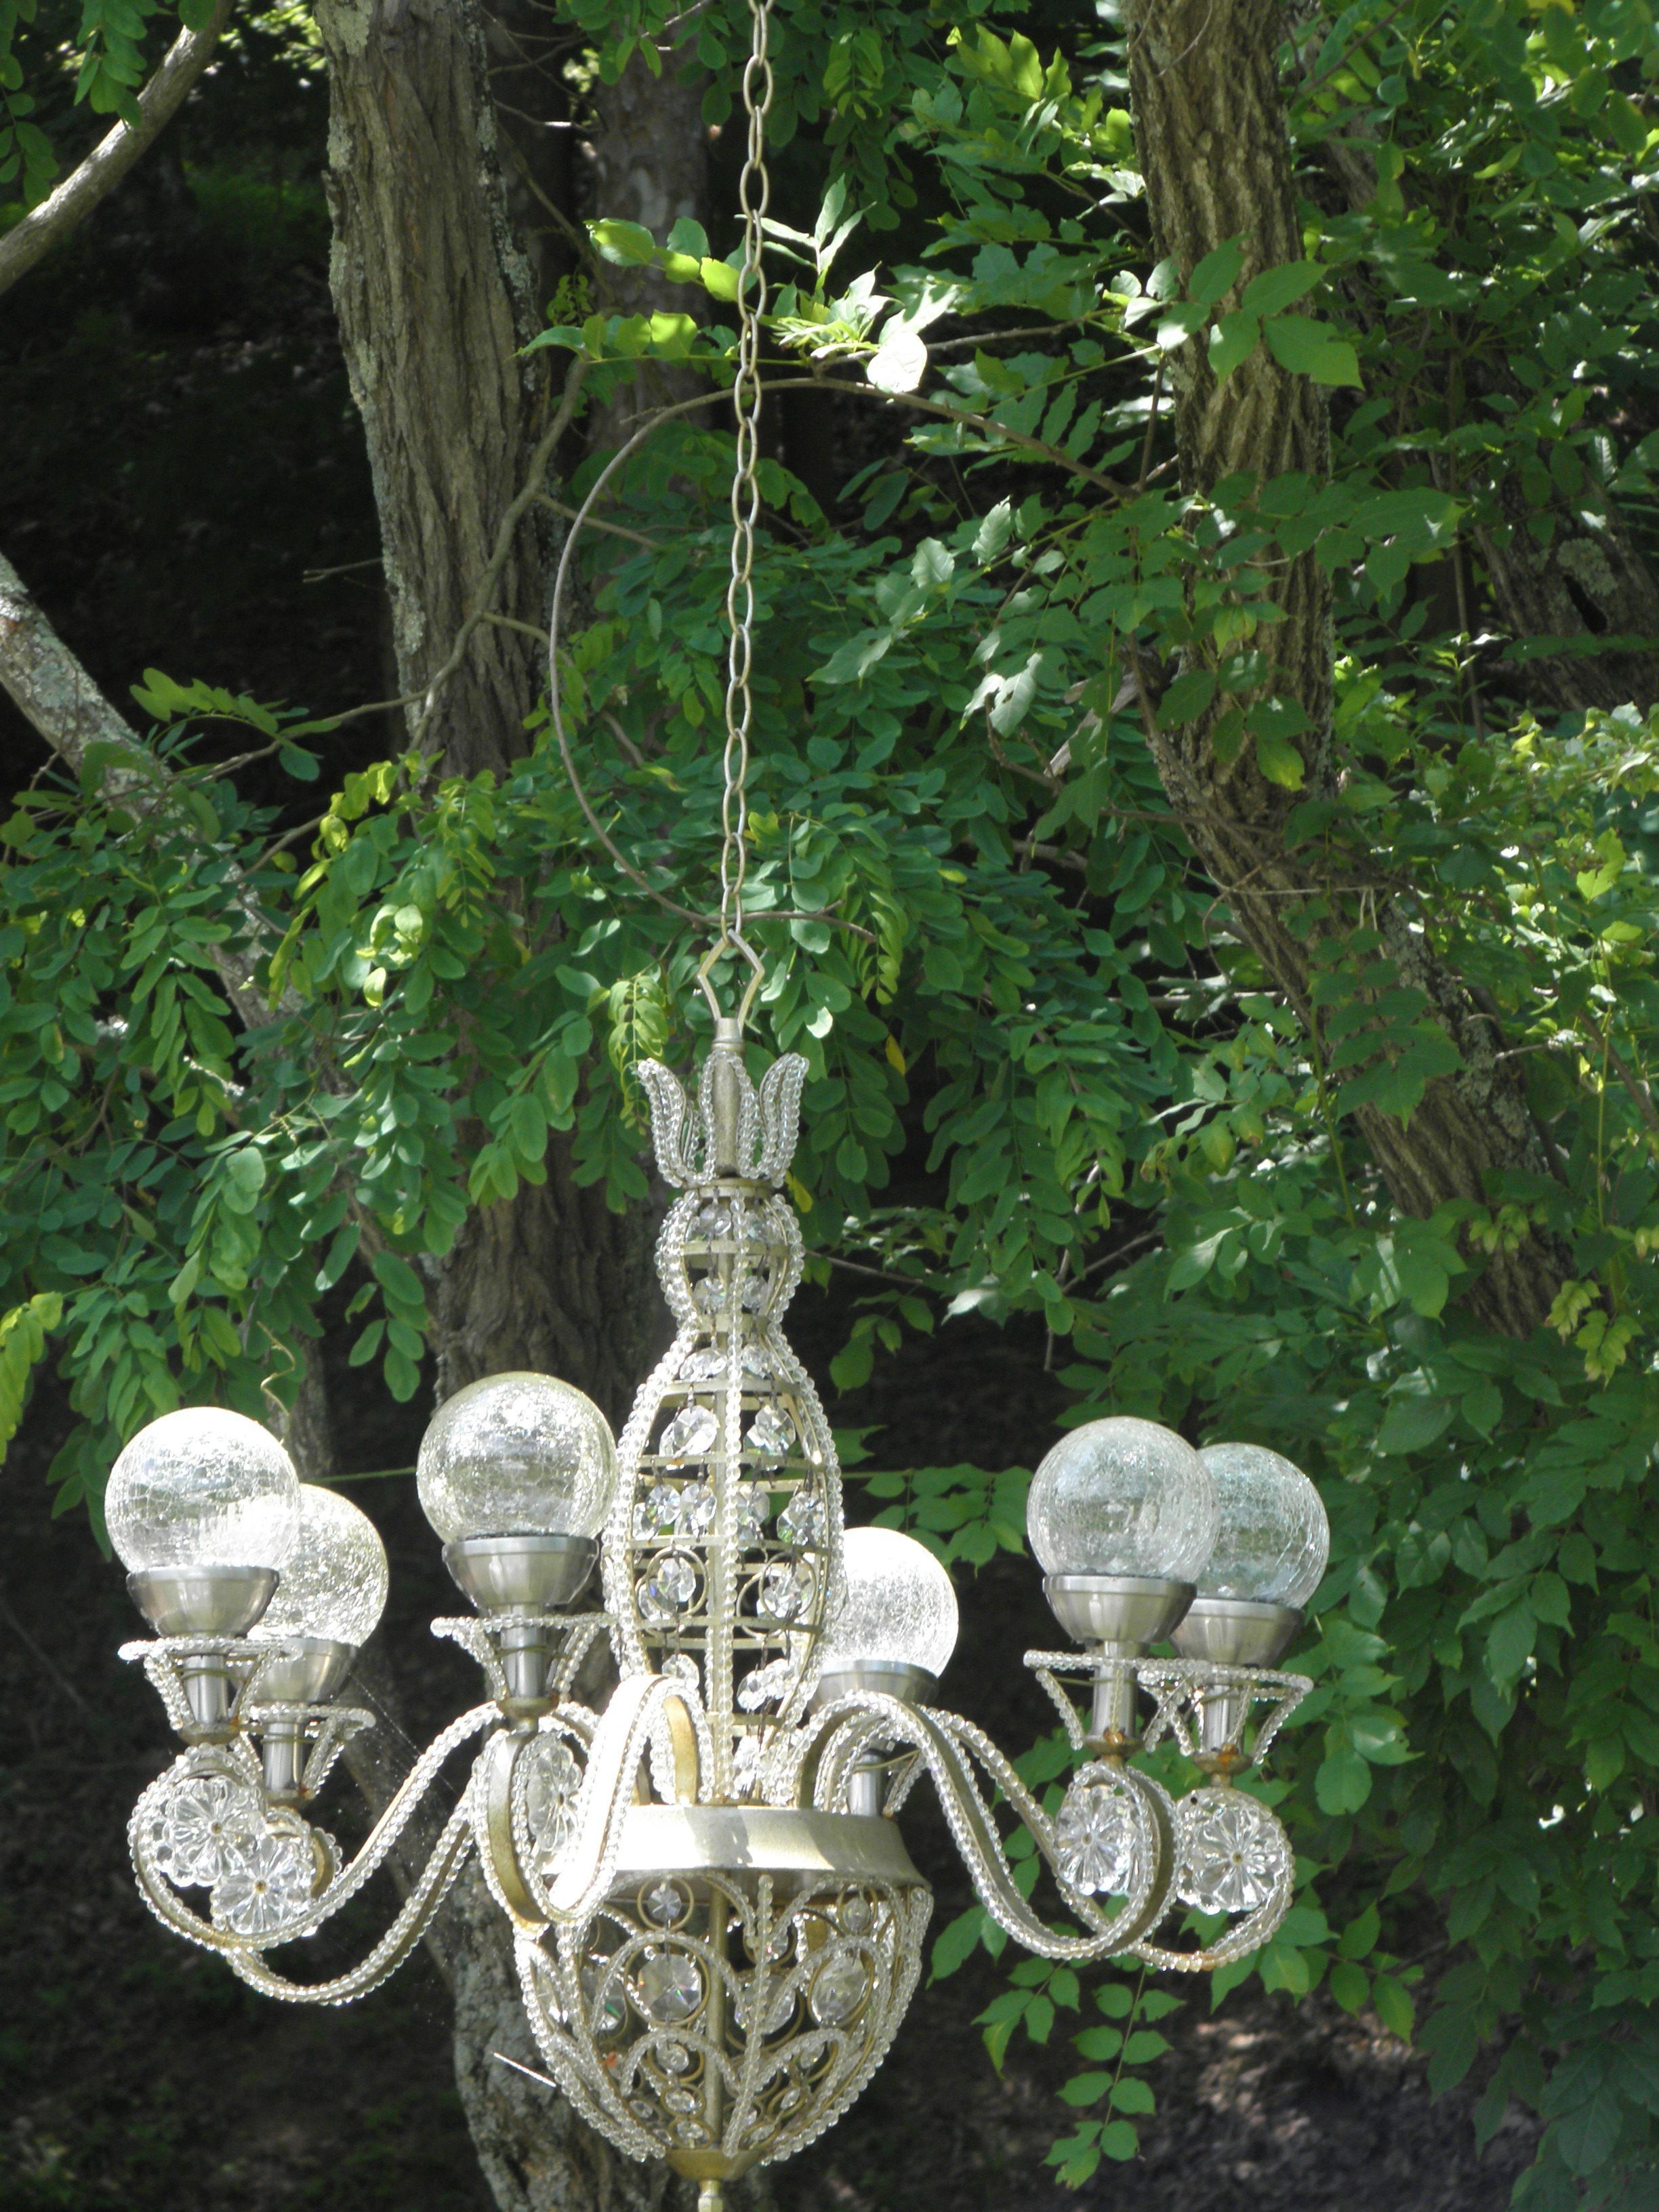 Solar Powered Chandelier In My Garden I Like The Round Balls Rather Than The Regular Kin Outdoor Solar Lights Backyard Solar Lights Outdoor Chandelier Wedding